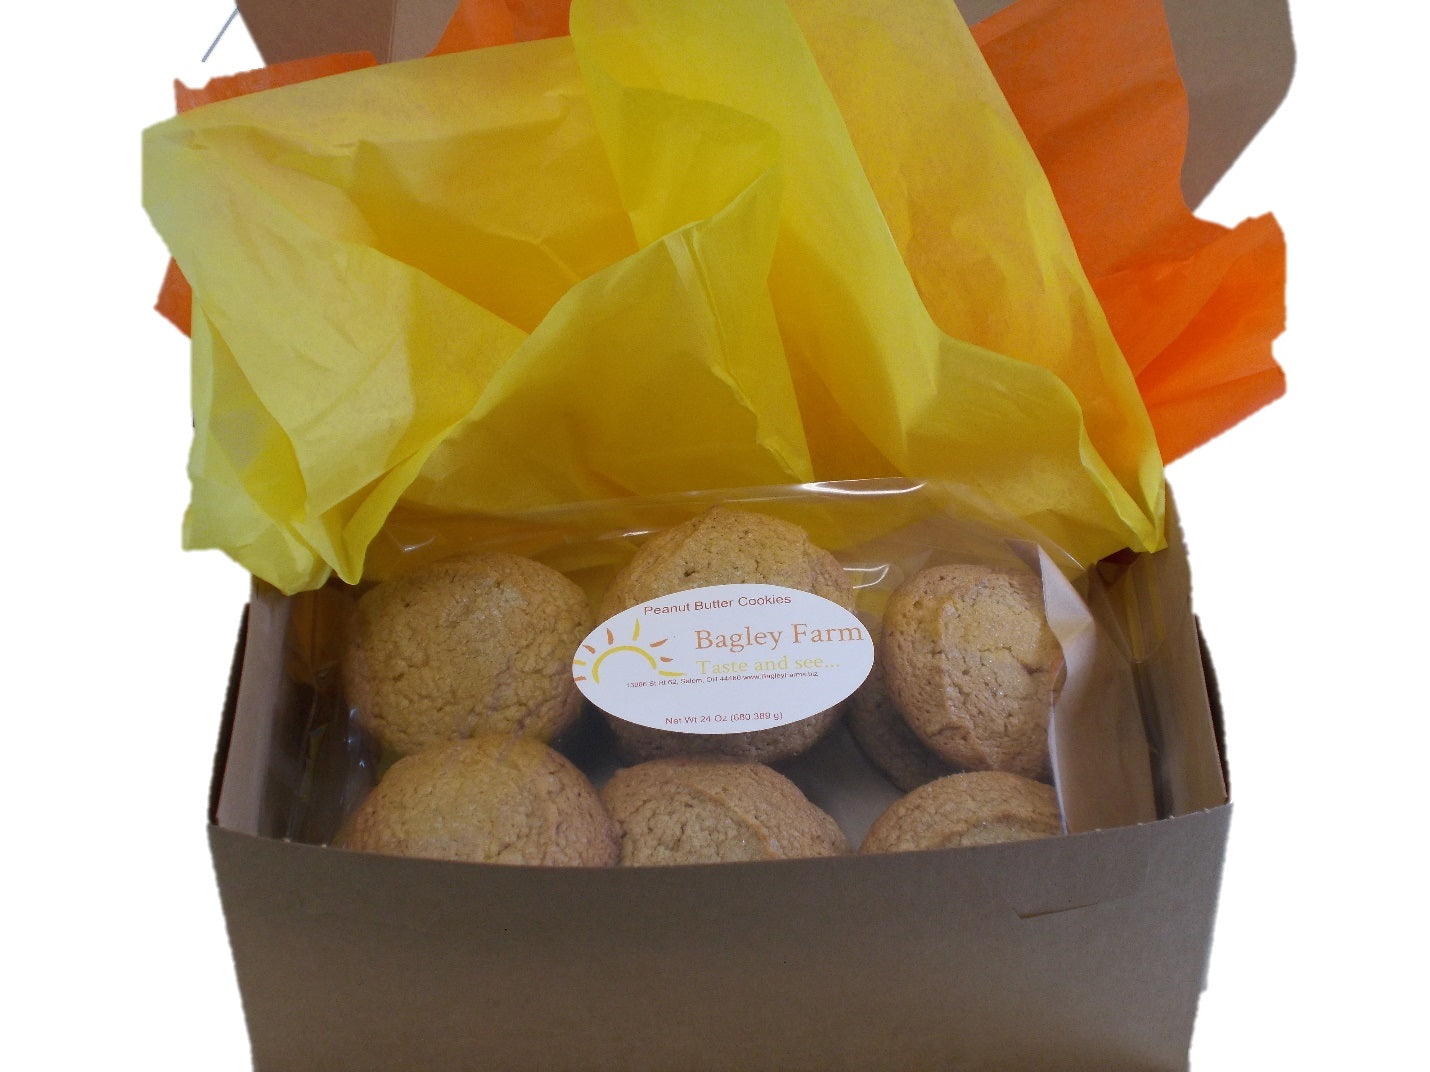 Bagley Farm's Peanut Butter Cookies - 1 dozen  Available in Gluten Free